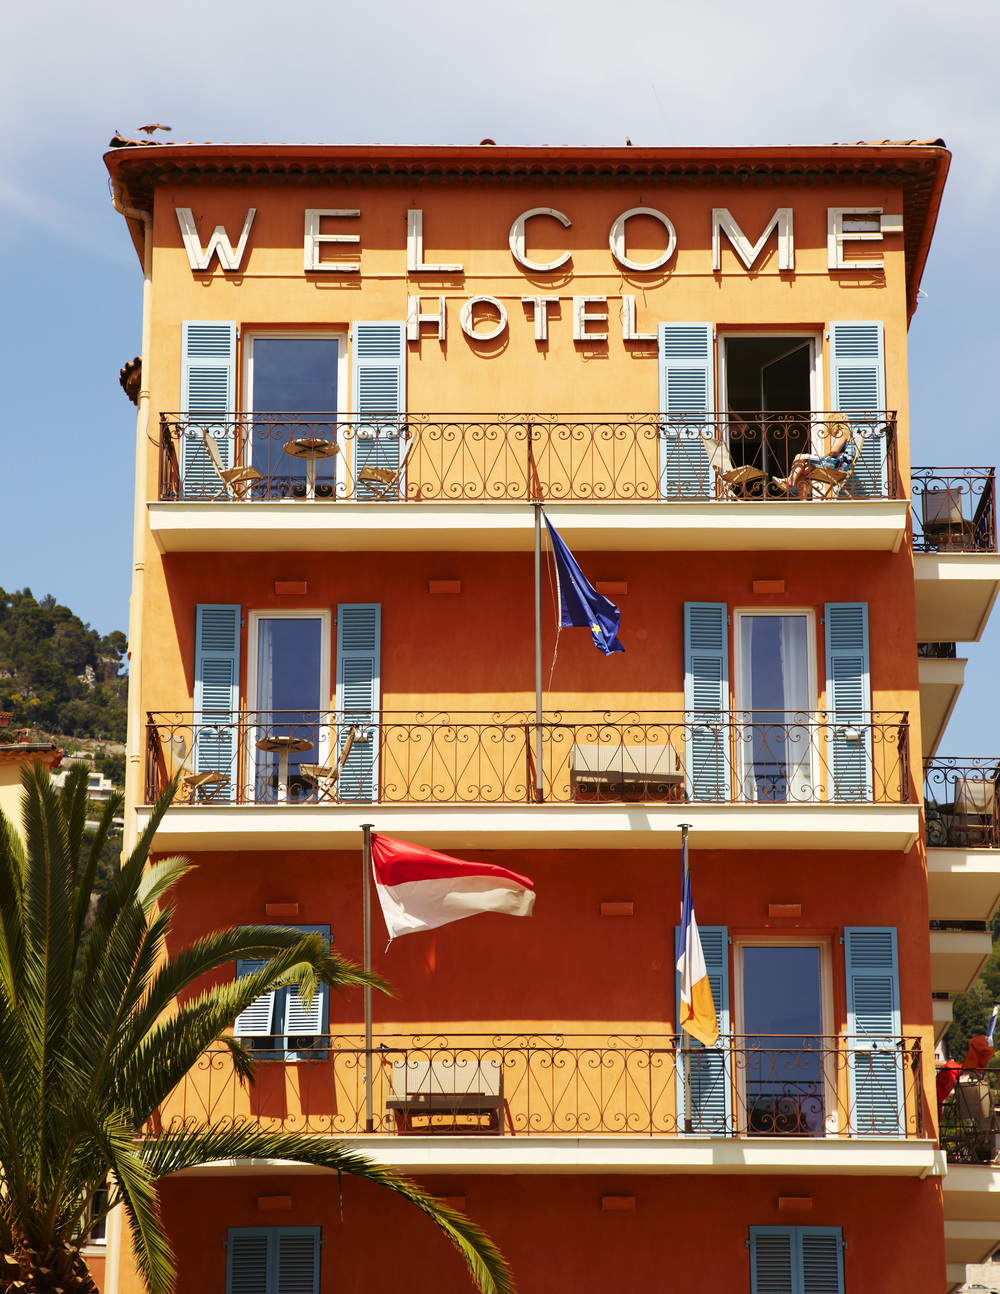 welcomehotel.jpg